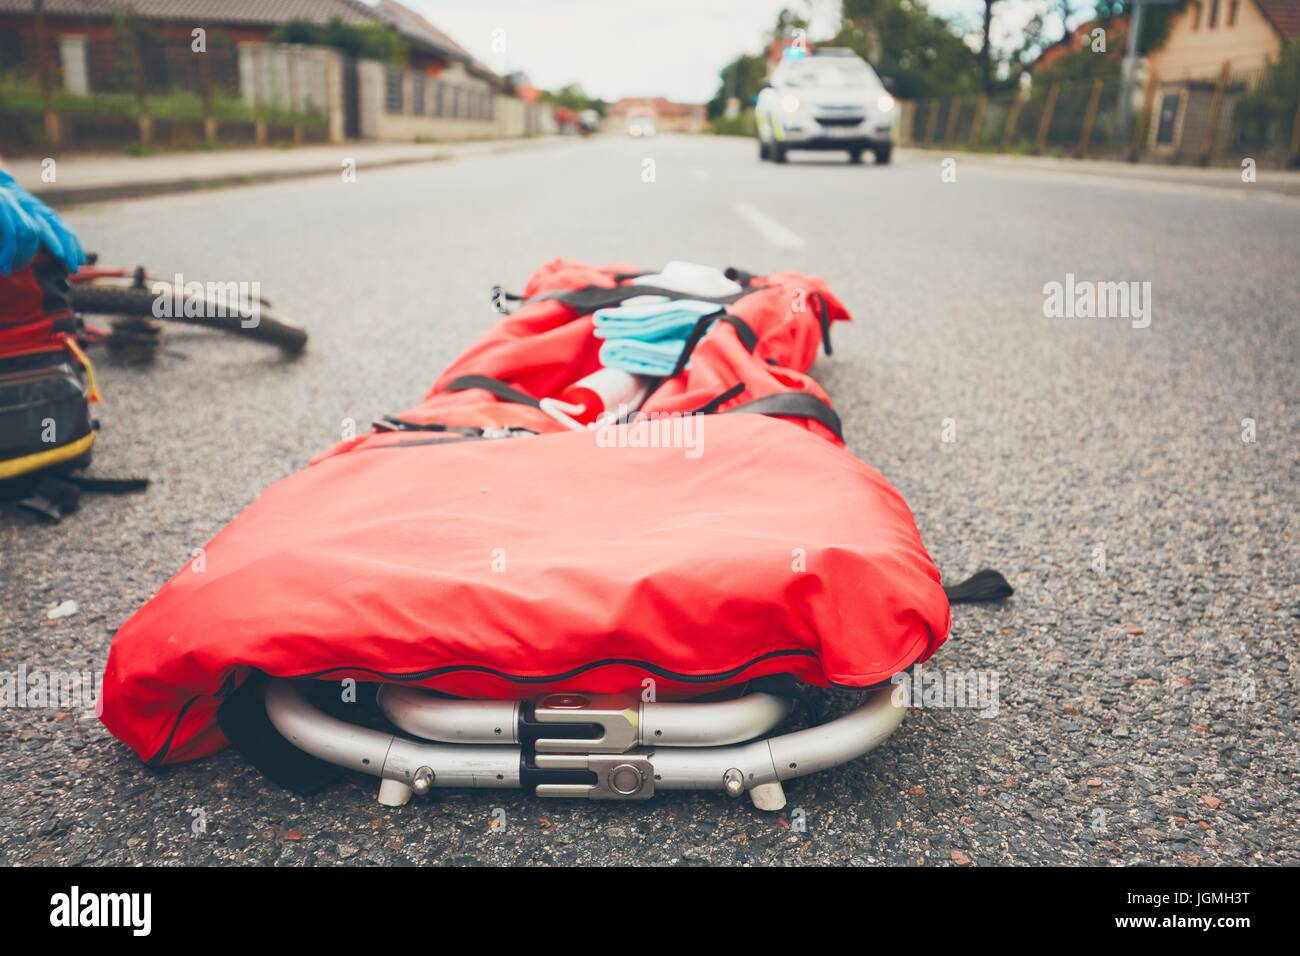 Stretcher on the road. Emergency medical service and and police teams are responding to an traffic accident Theme - Stock Image